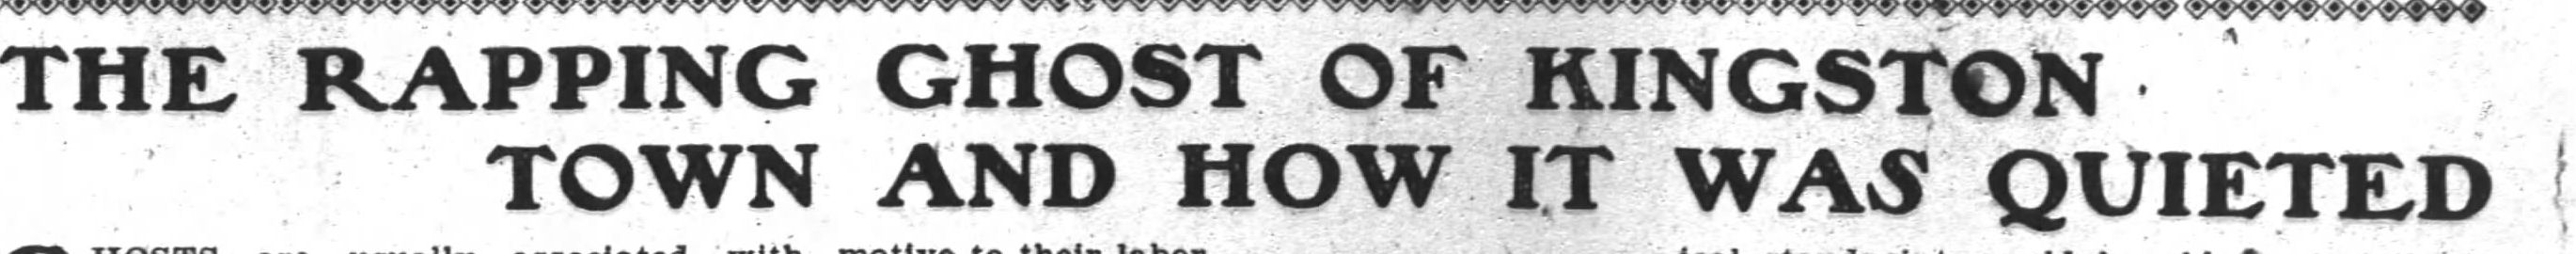 San Francisco Chronicle 03/06/1904